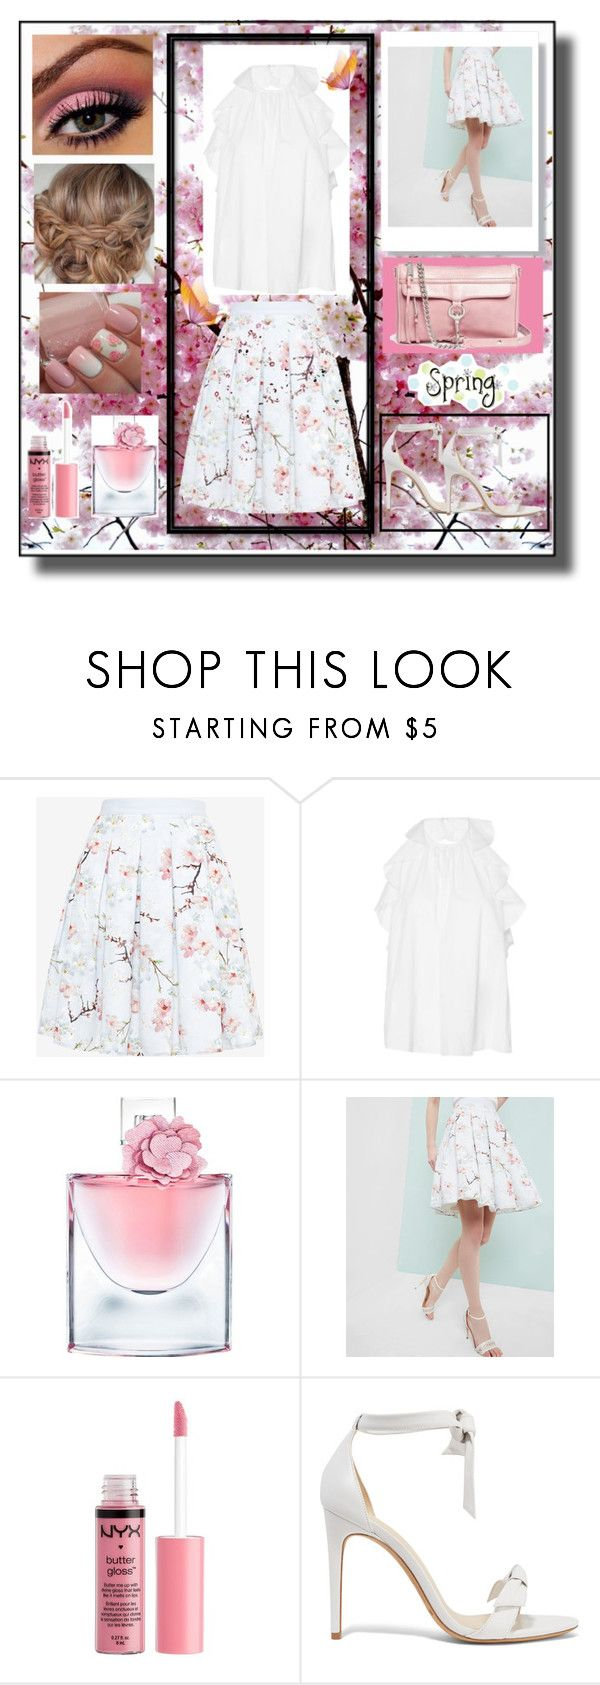 """""""Spring!"""" by snowflakeunique ❤ liked on Polyvore featuring Ted Baker, Ulla Johnson, Lancôme, Charlotte Russe, Alexandre Birman and Rebecca Minkoff"""